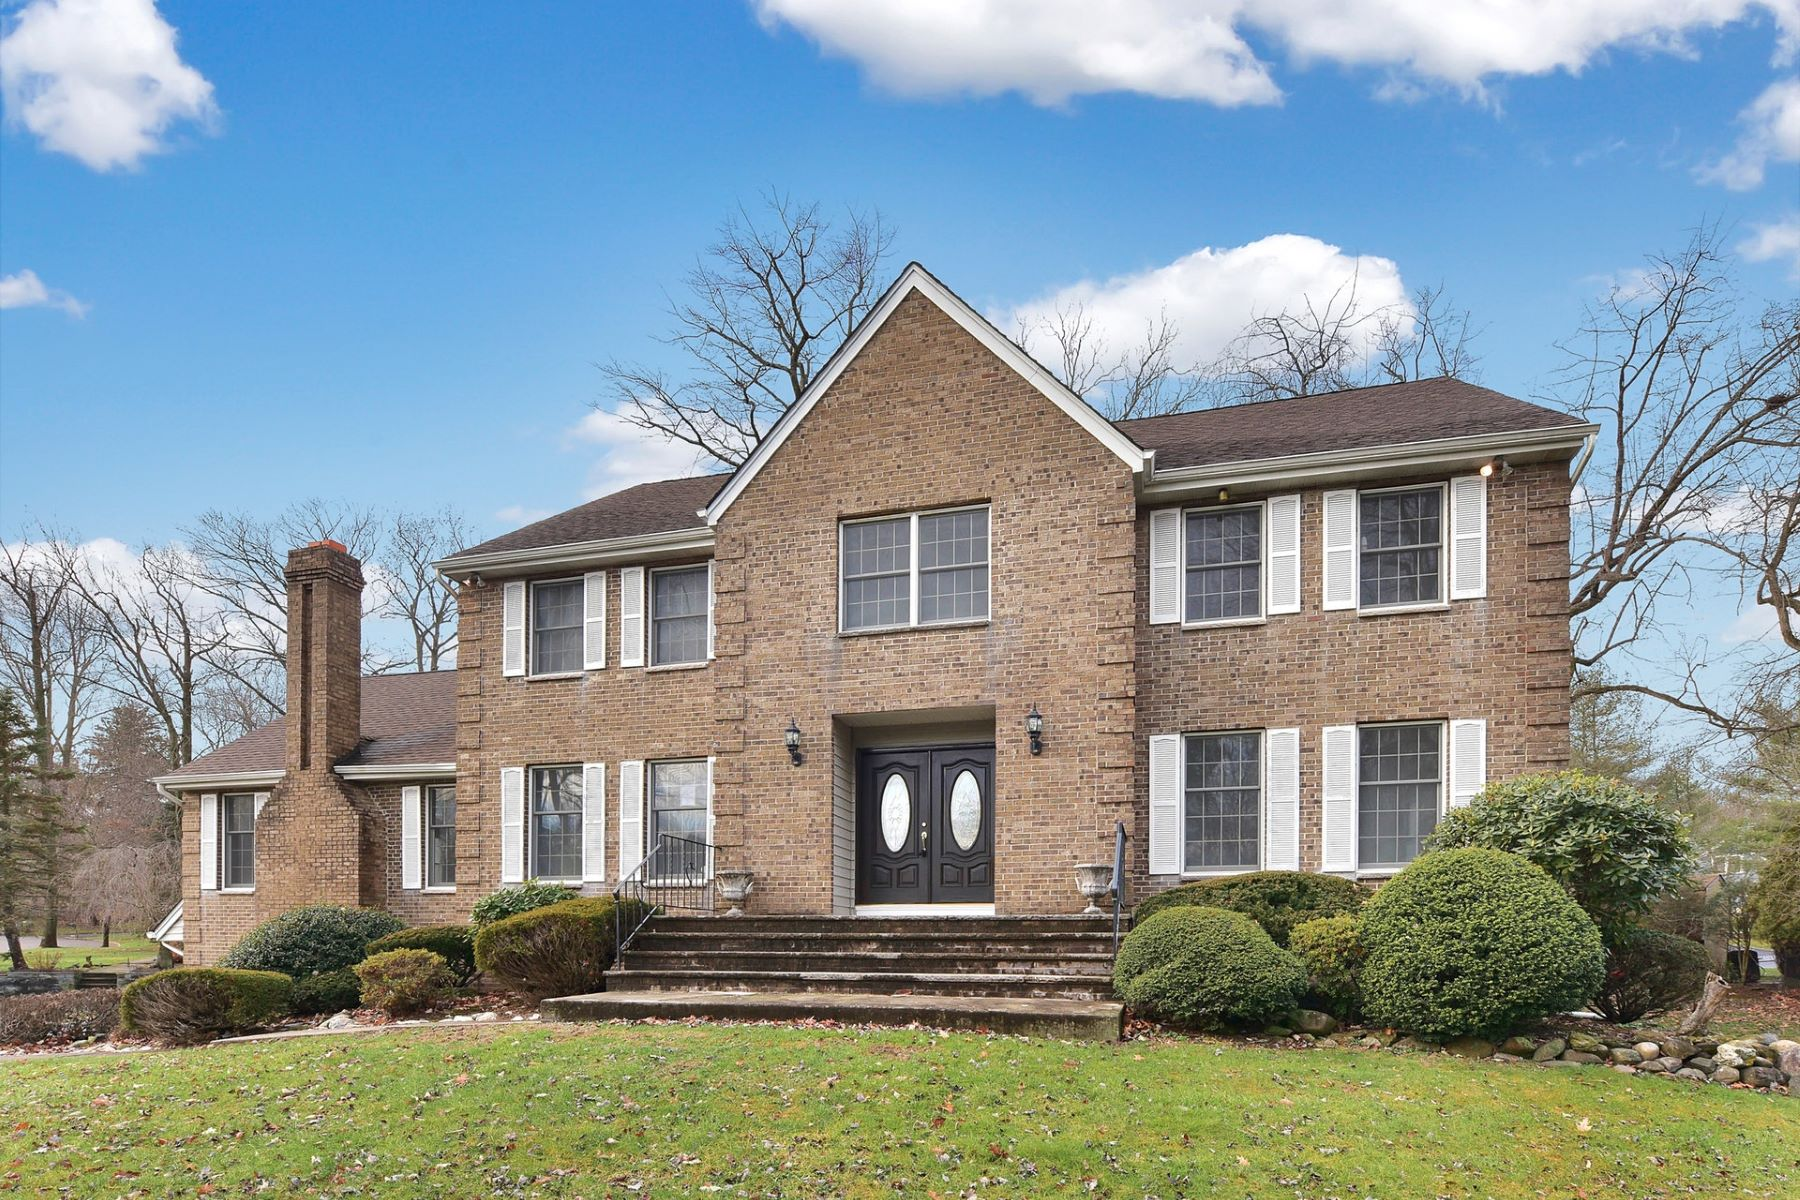 Single Family Home for Sale at Center Hall Colonial 200 Mckenna Dr, Norwood, New Jersey 07648 United States